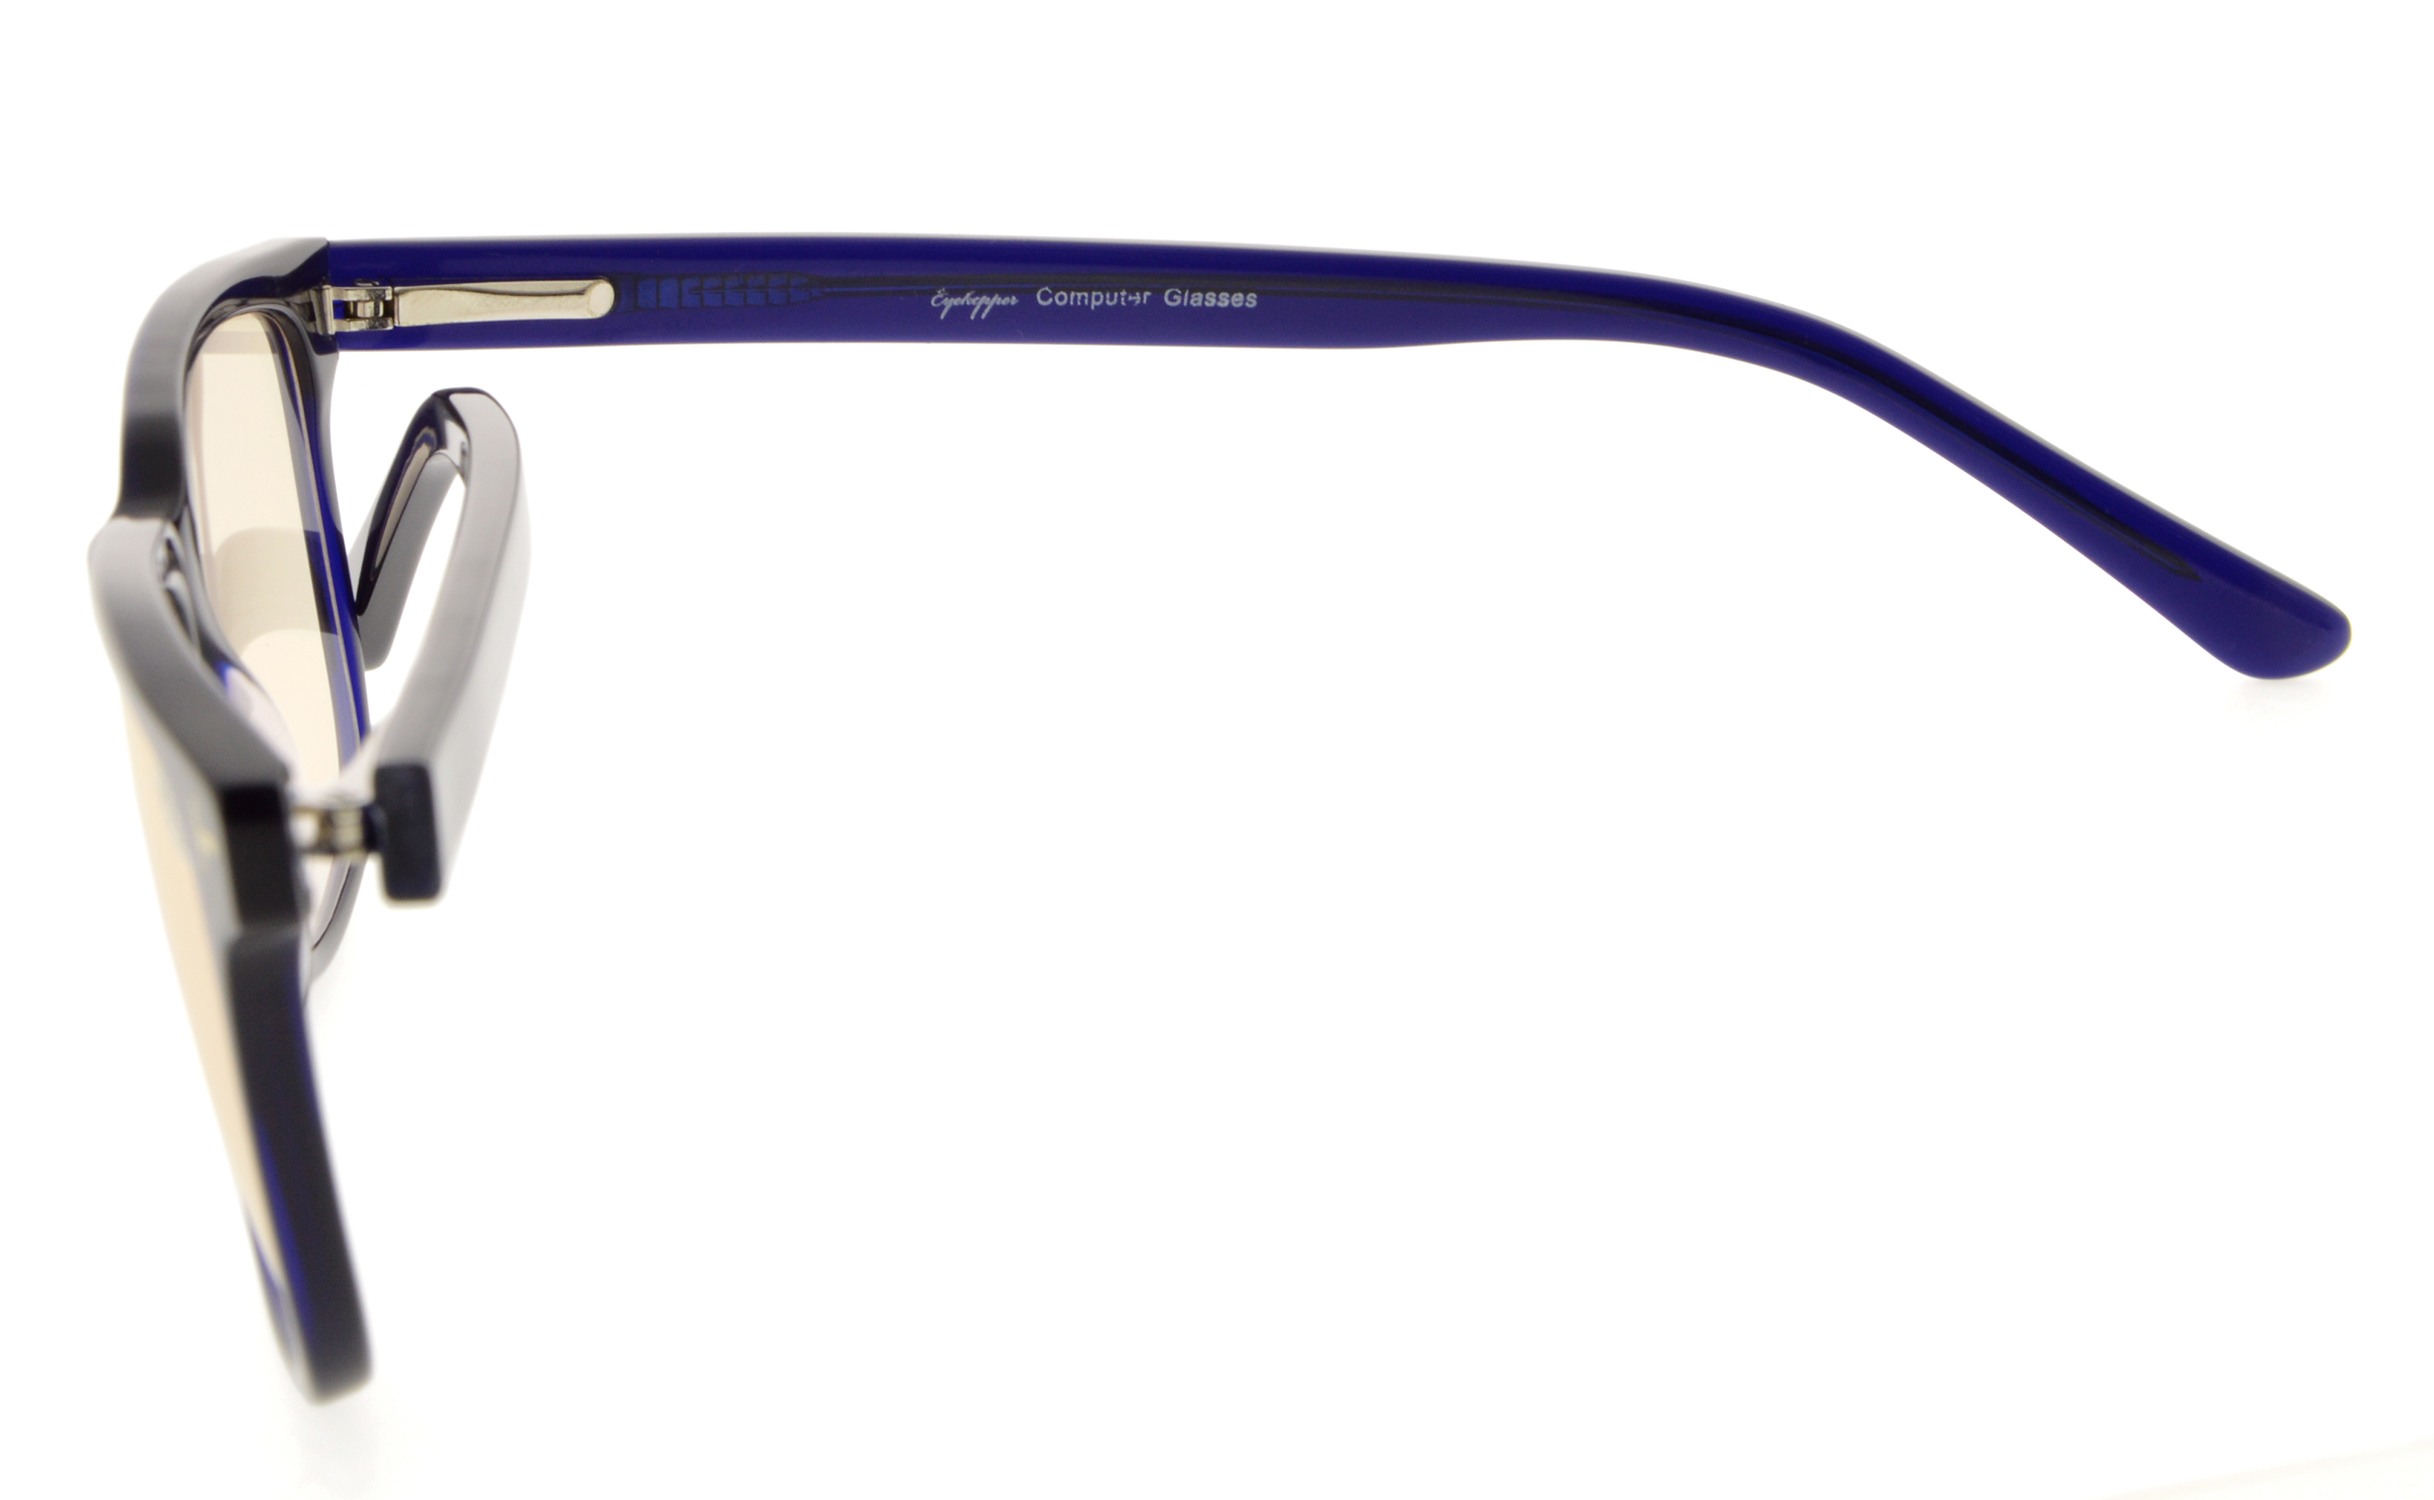 b253d7c01b Eyekepper Computer Reading Glasses UV Protection Anti Blue Light with RX-Able  Acetate Frame Amber Tinted Lens GX002